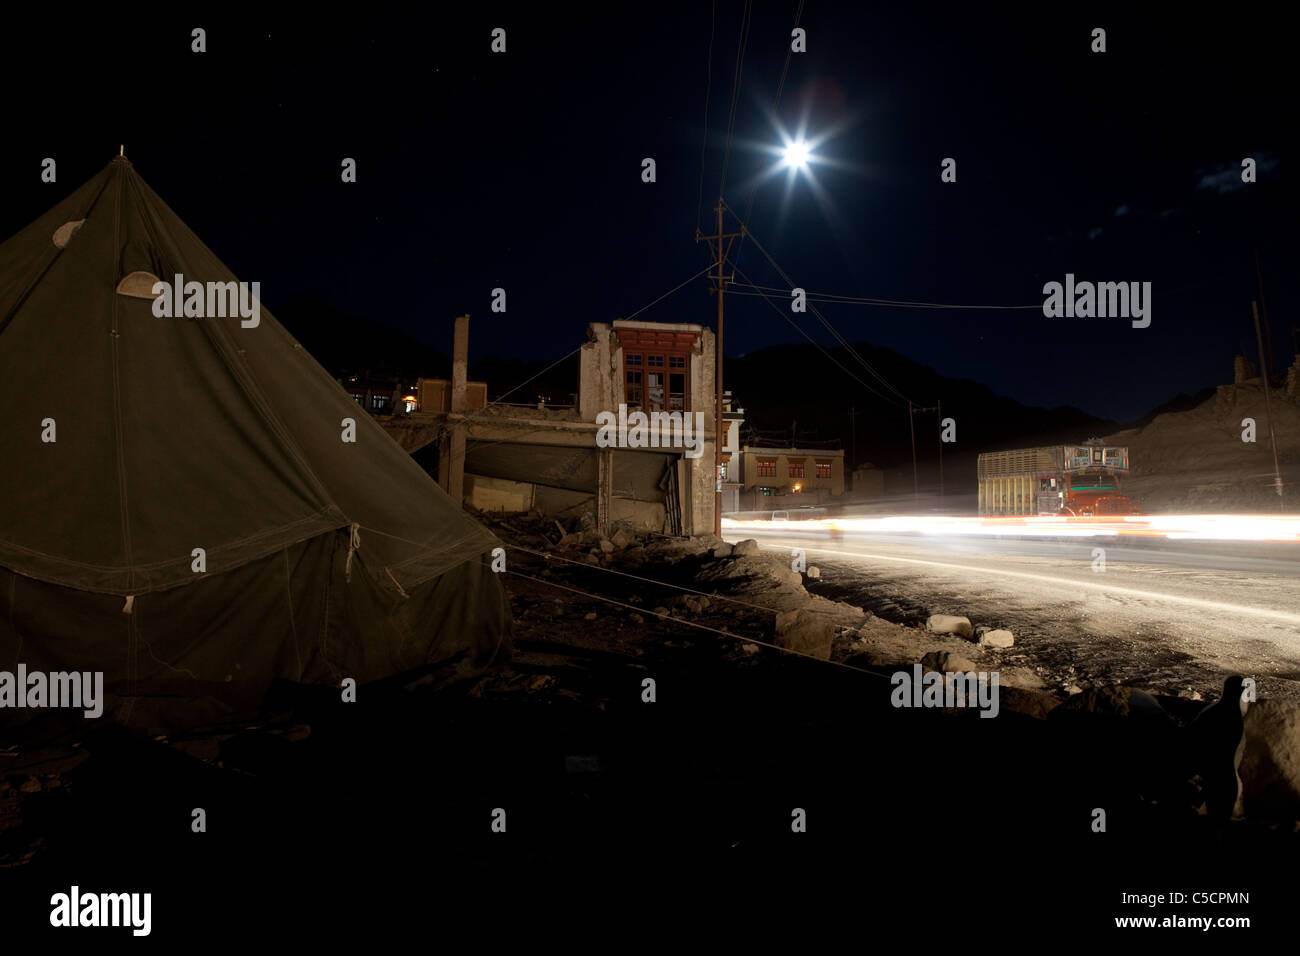 Ruined house near the bus-stop in Leh with full moon above. - Stock Image